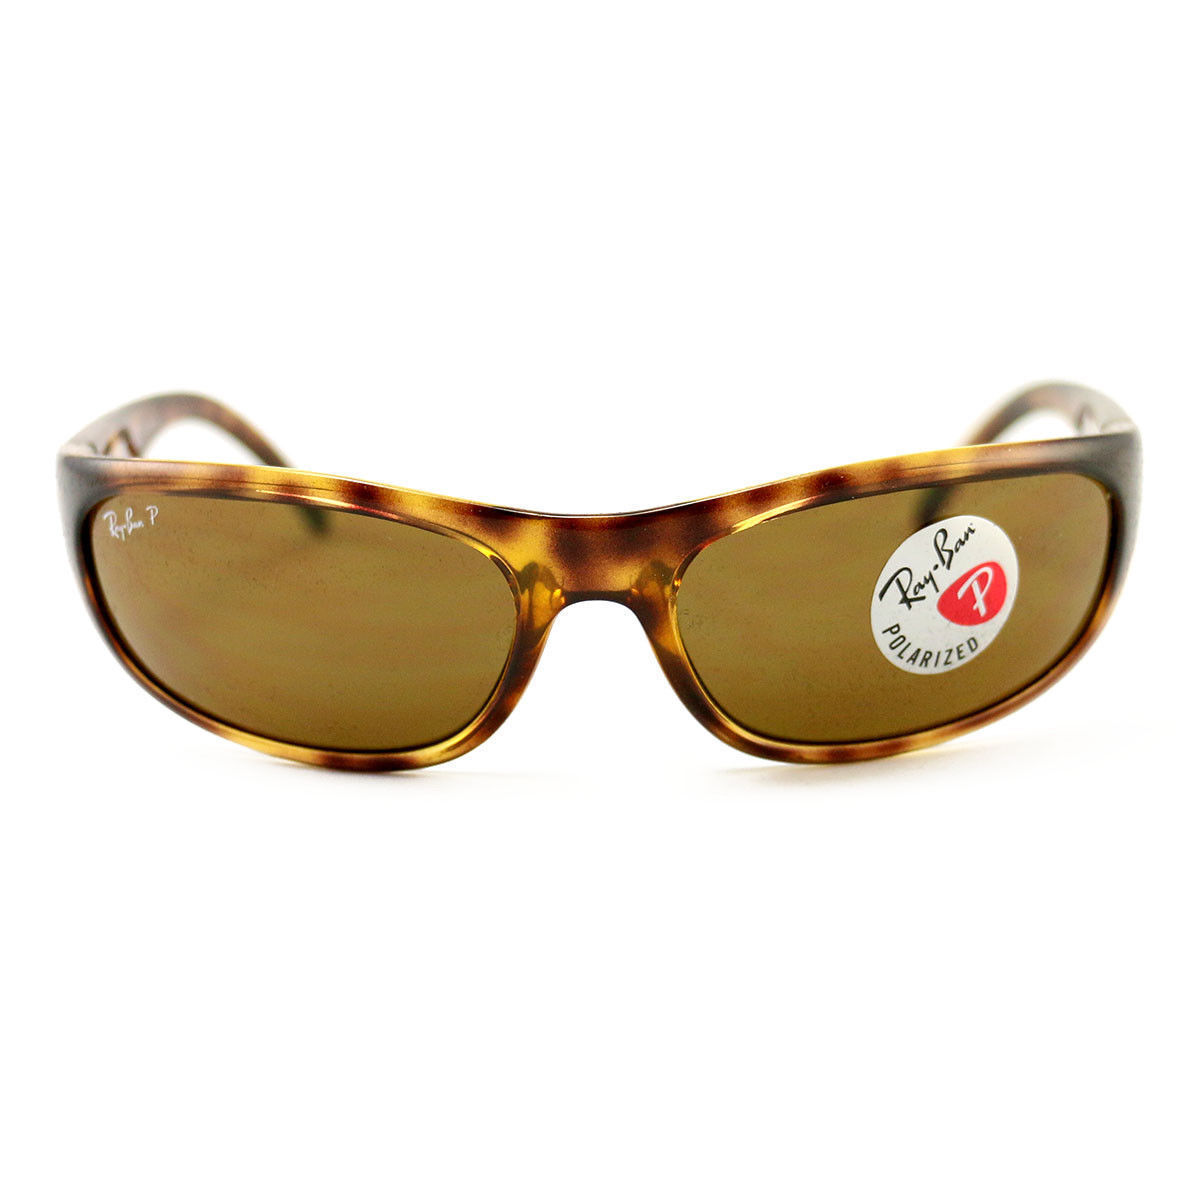 3b919c99d2 Ray Ban 4151 710 Size « One More Soul